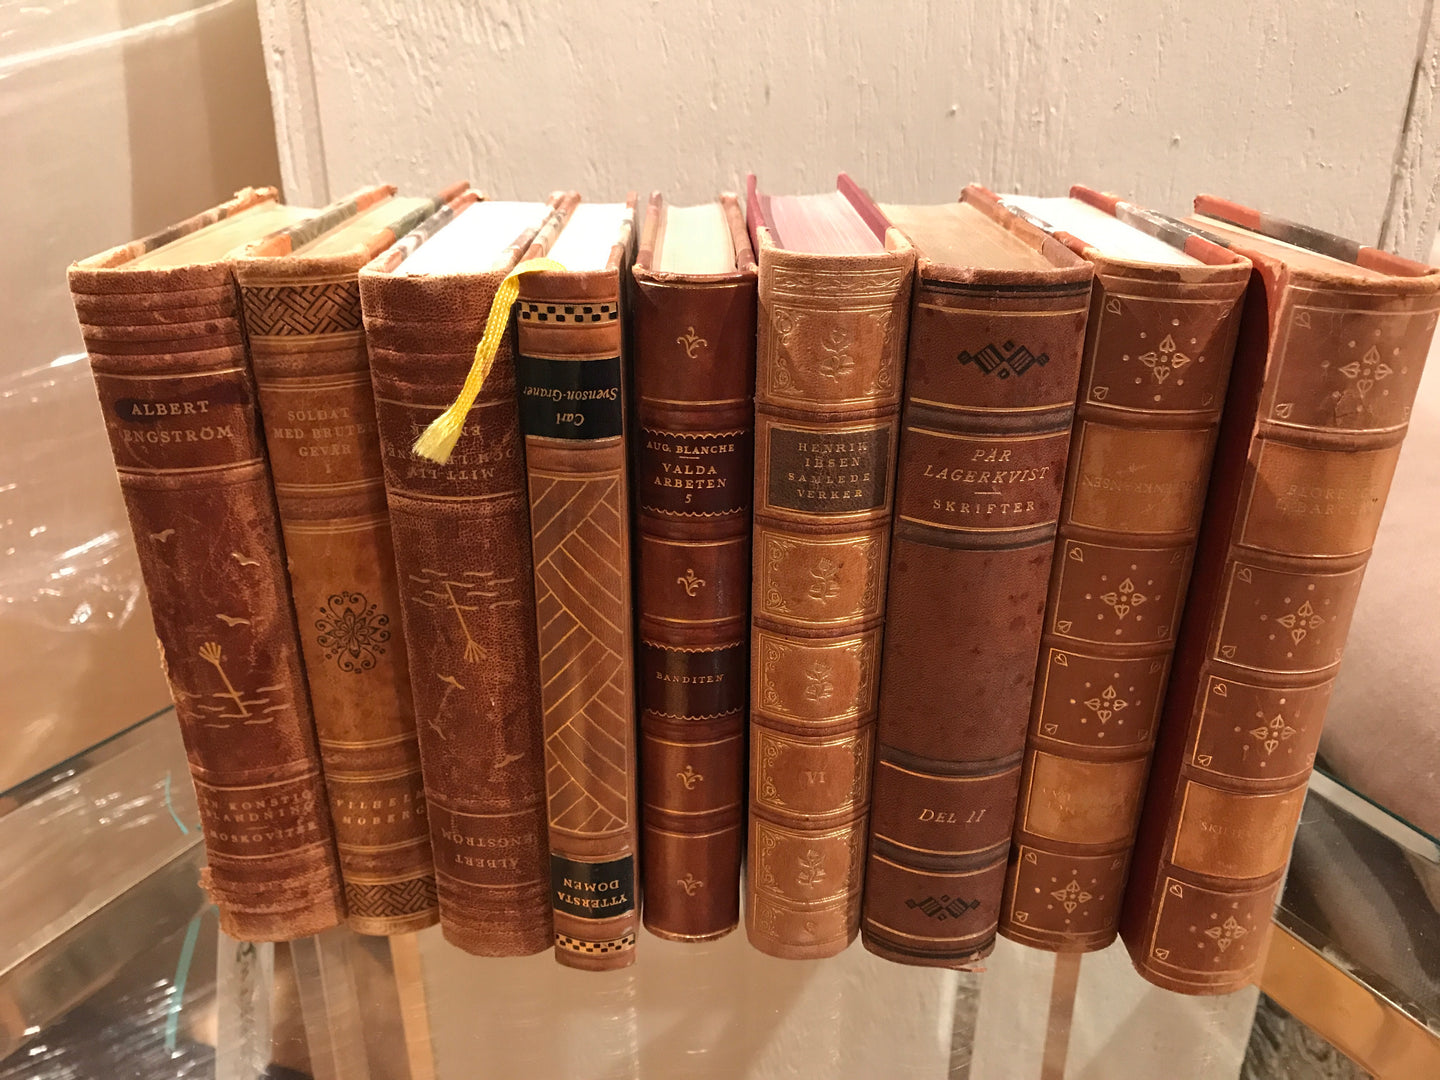 Set of 9 German leather books - The Sweetwood Collection